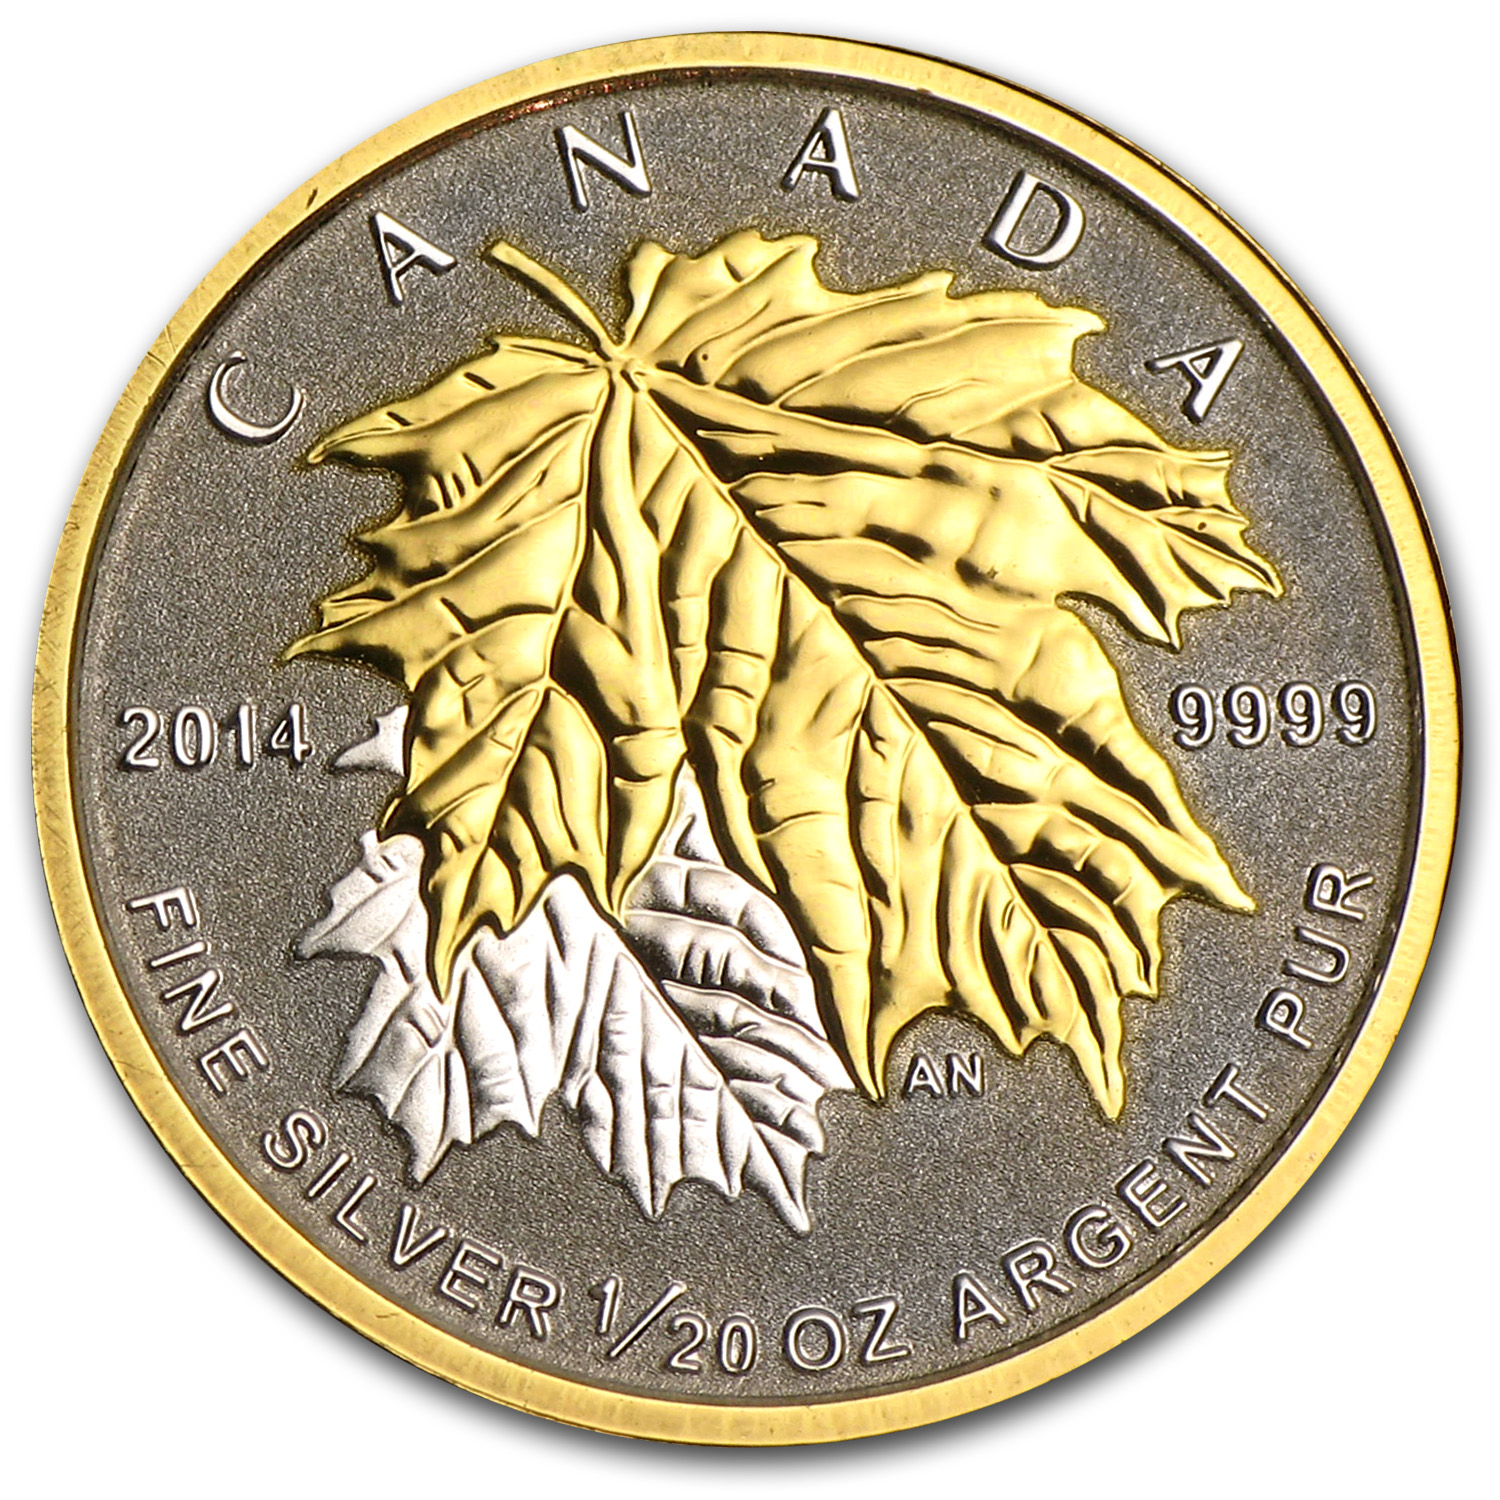 2014 Canada 1/10 oz Silver $1 Maple Leaf (Gilded)